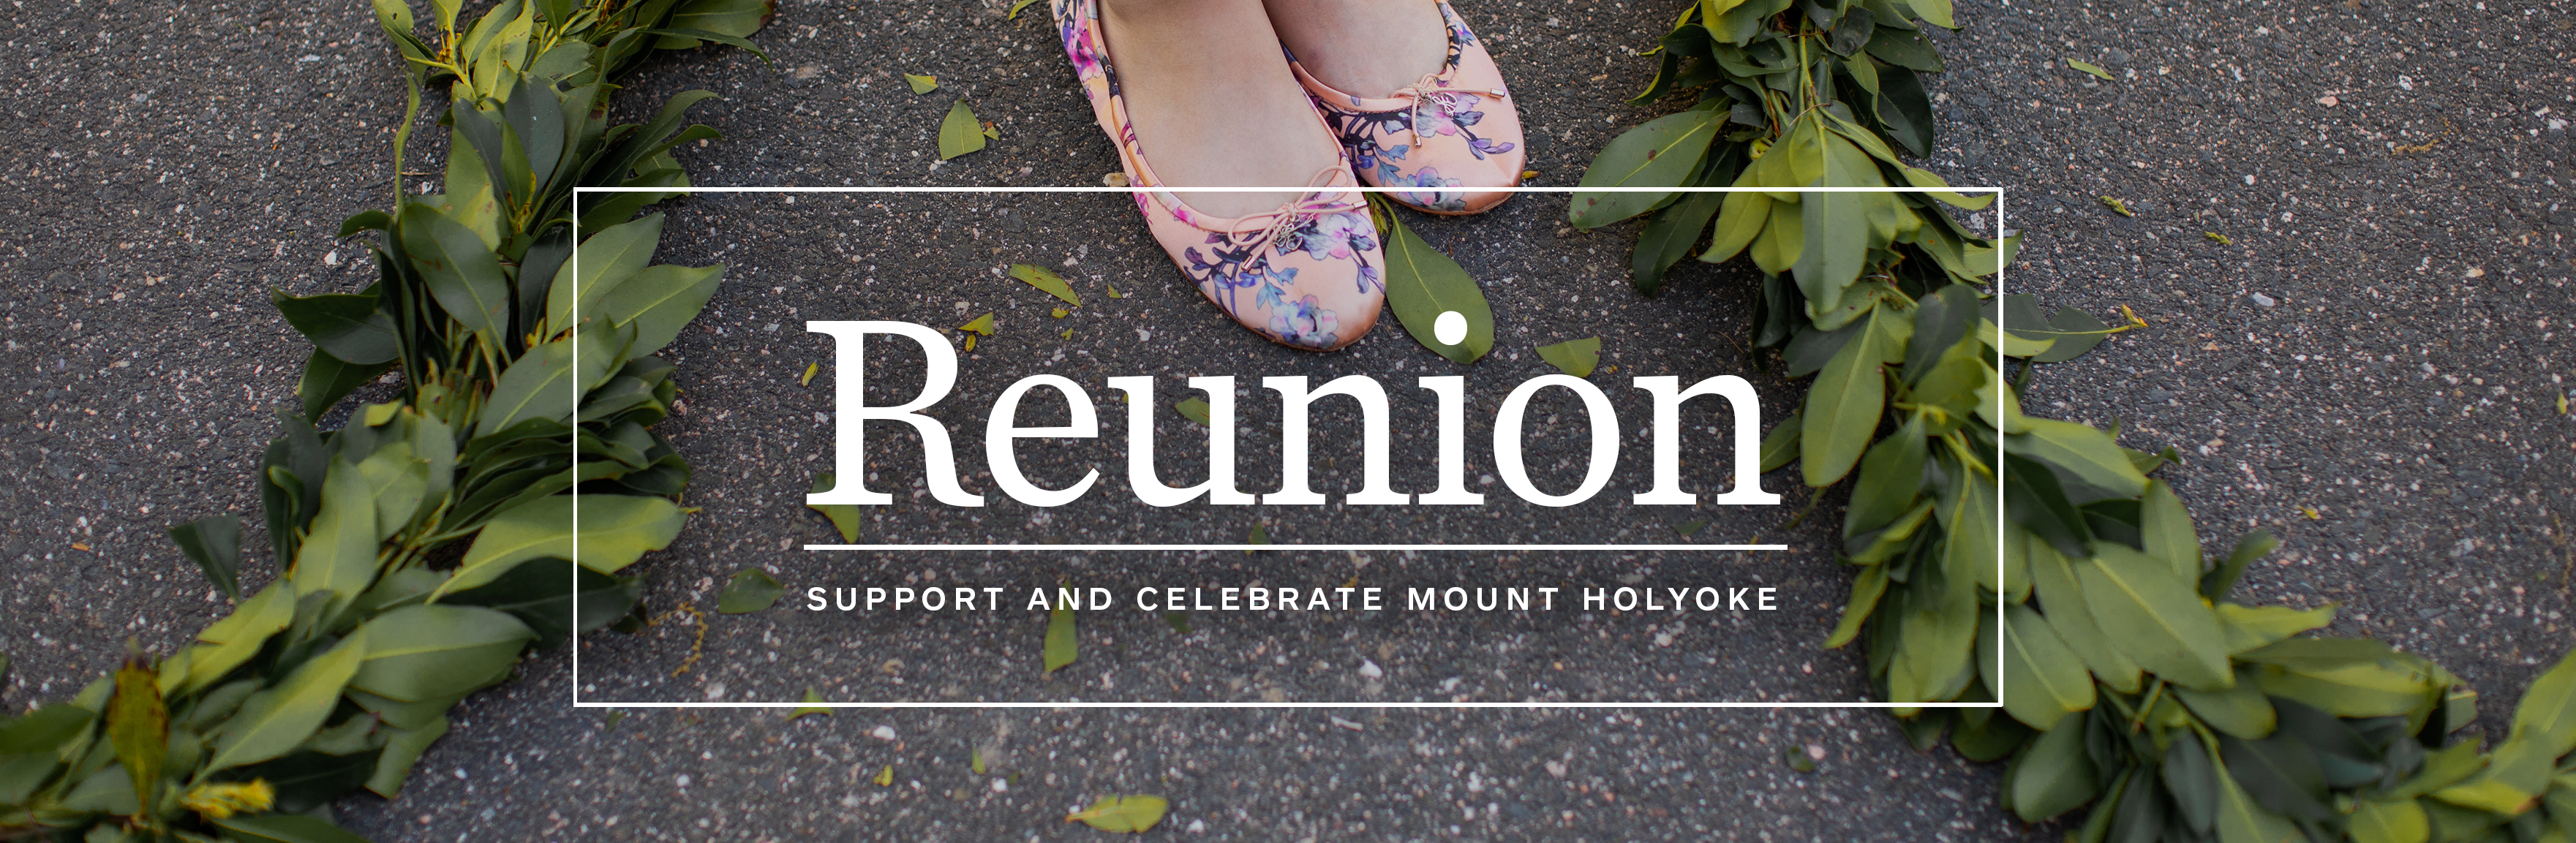 Reunion: Support and celebrate Mount Holyoke